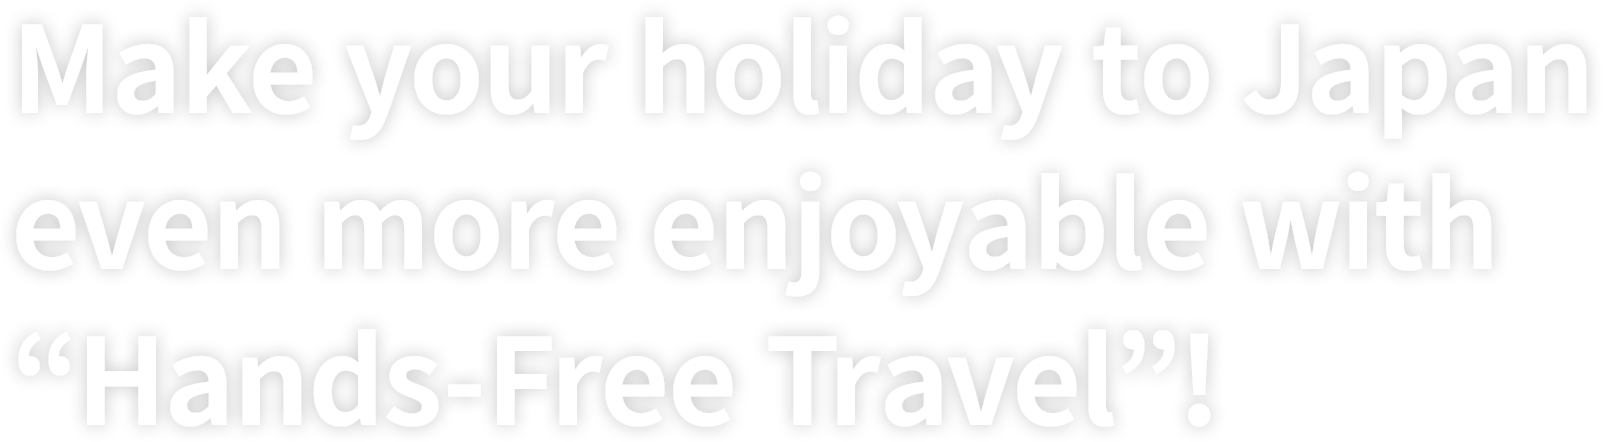 Make your holiday to Japan even more enjoyable with Hands-Free Travel!